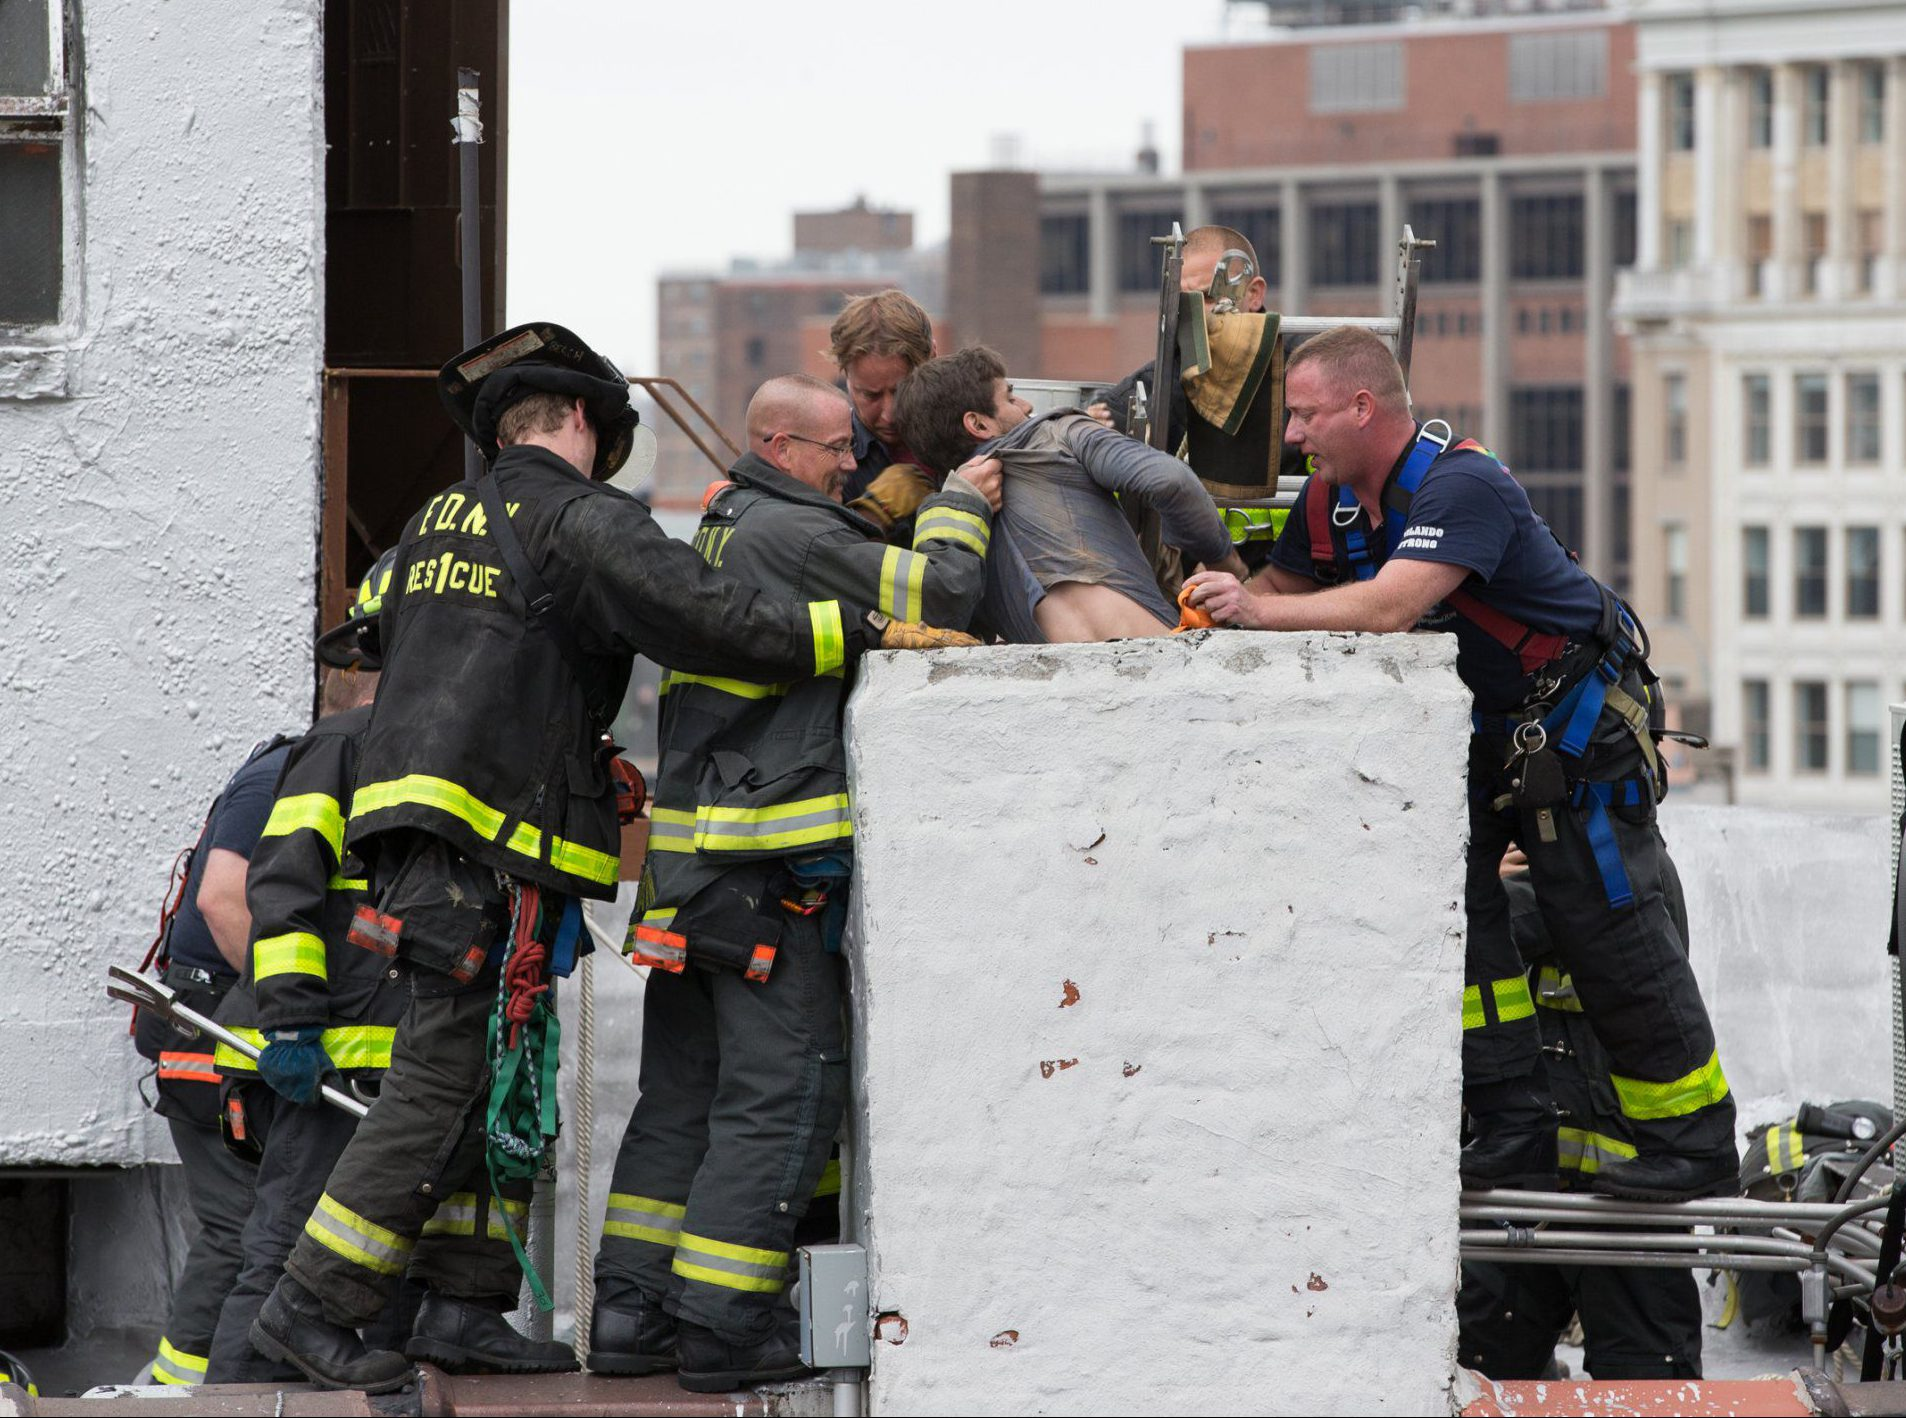 Guy goes for a cigarette on the roof, gets locked out, goes down chimney, it goes wrong